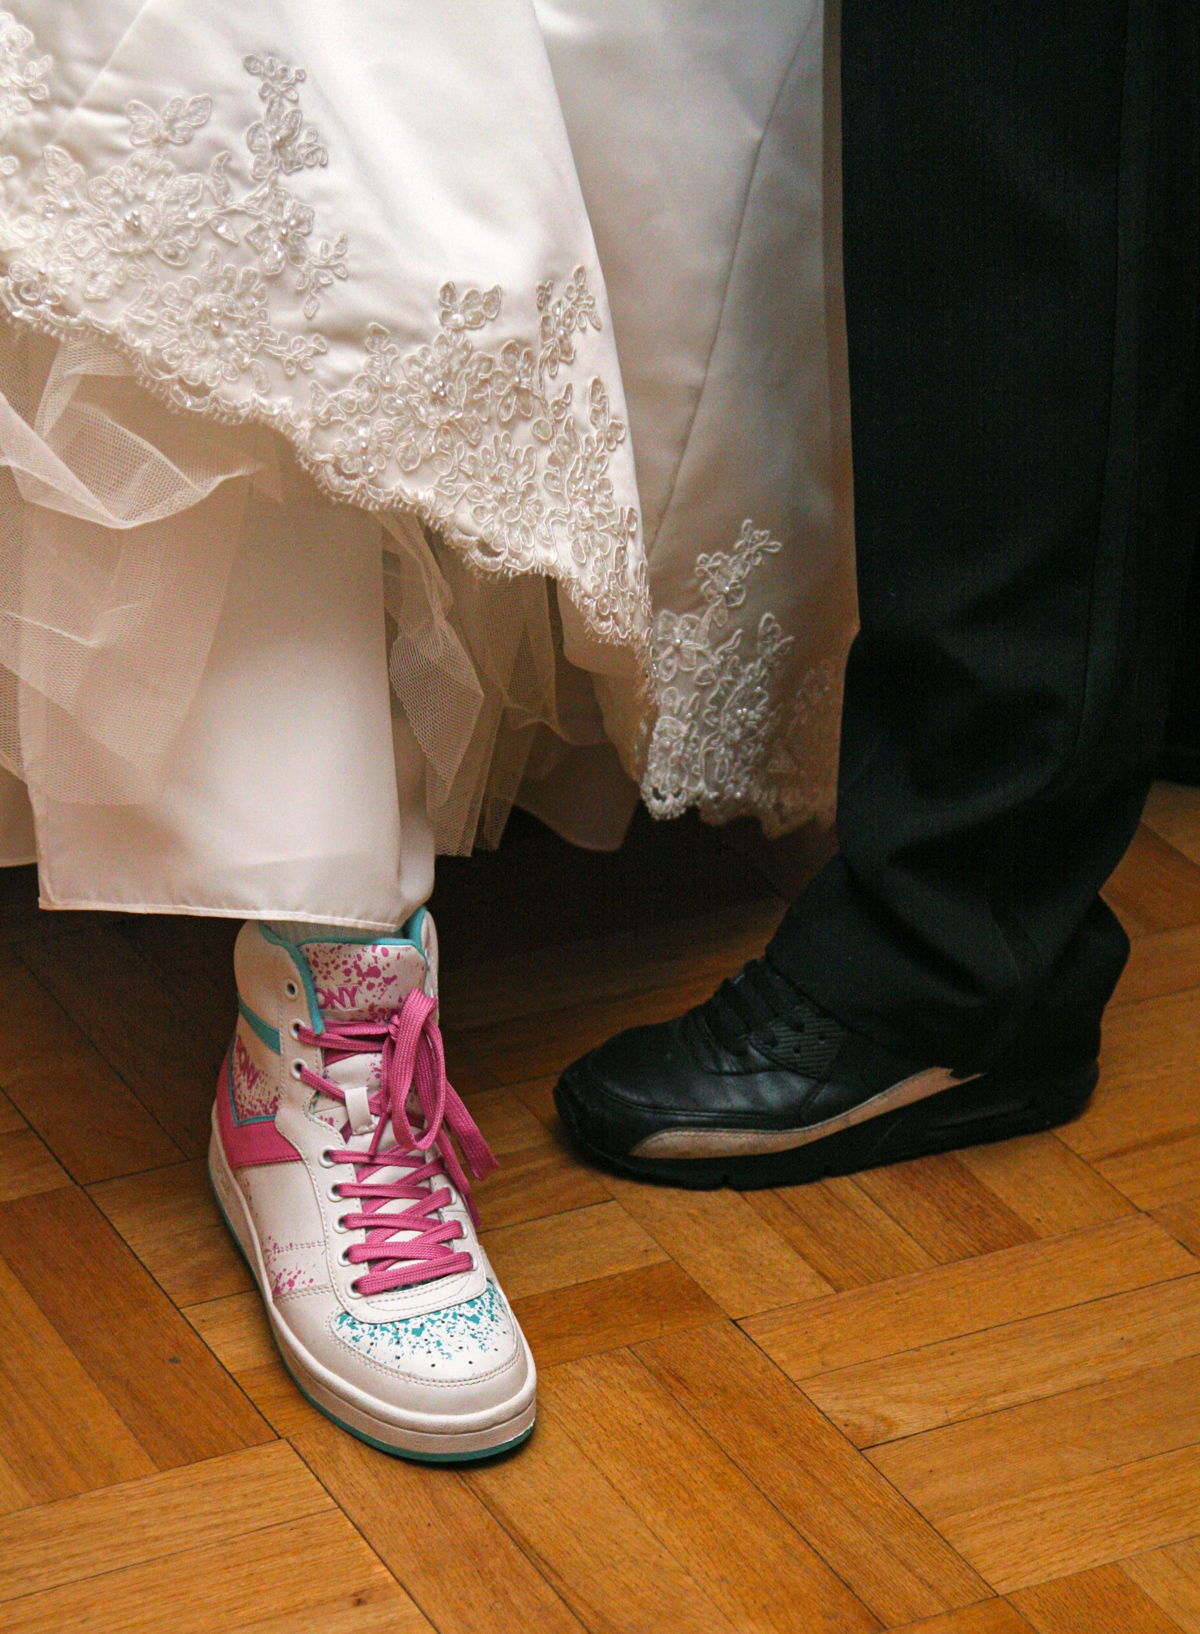 Bride and groom dancing shoes